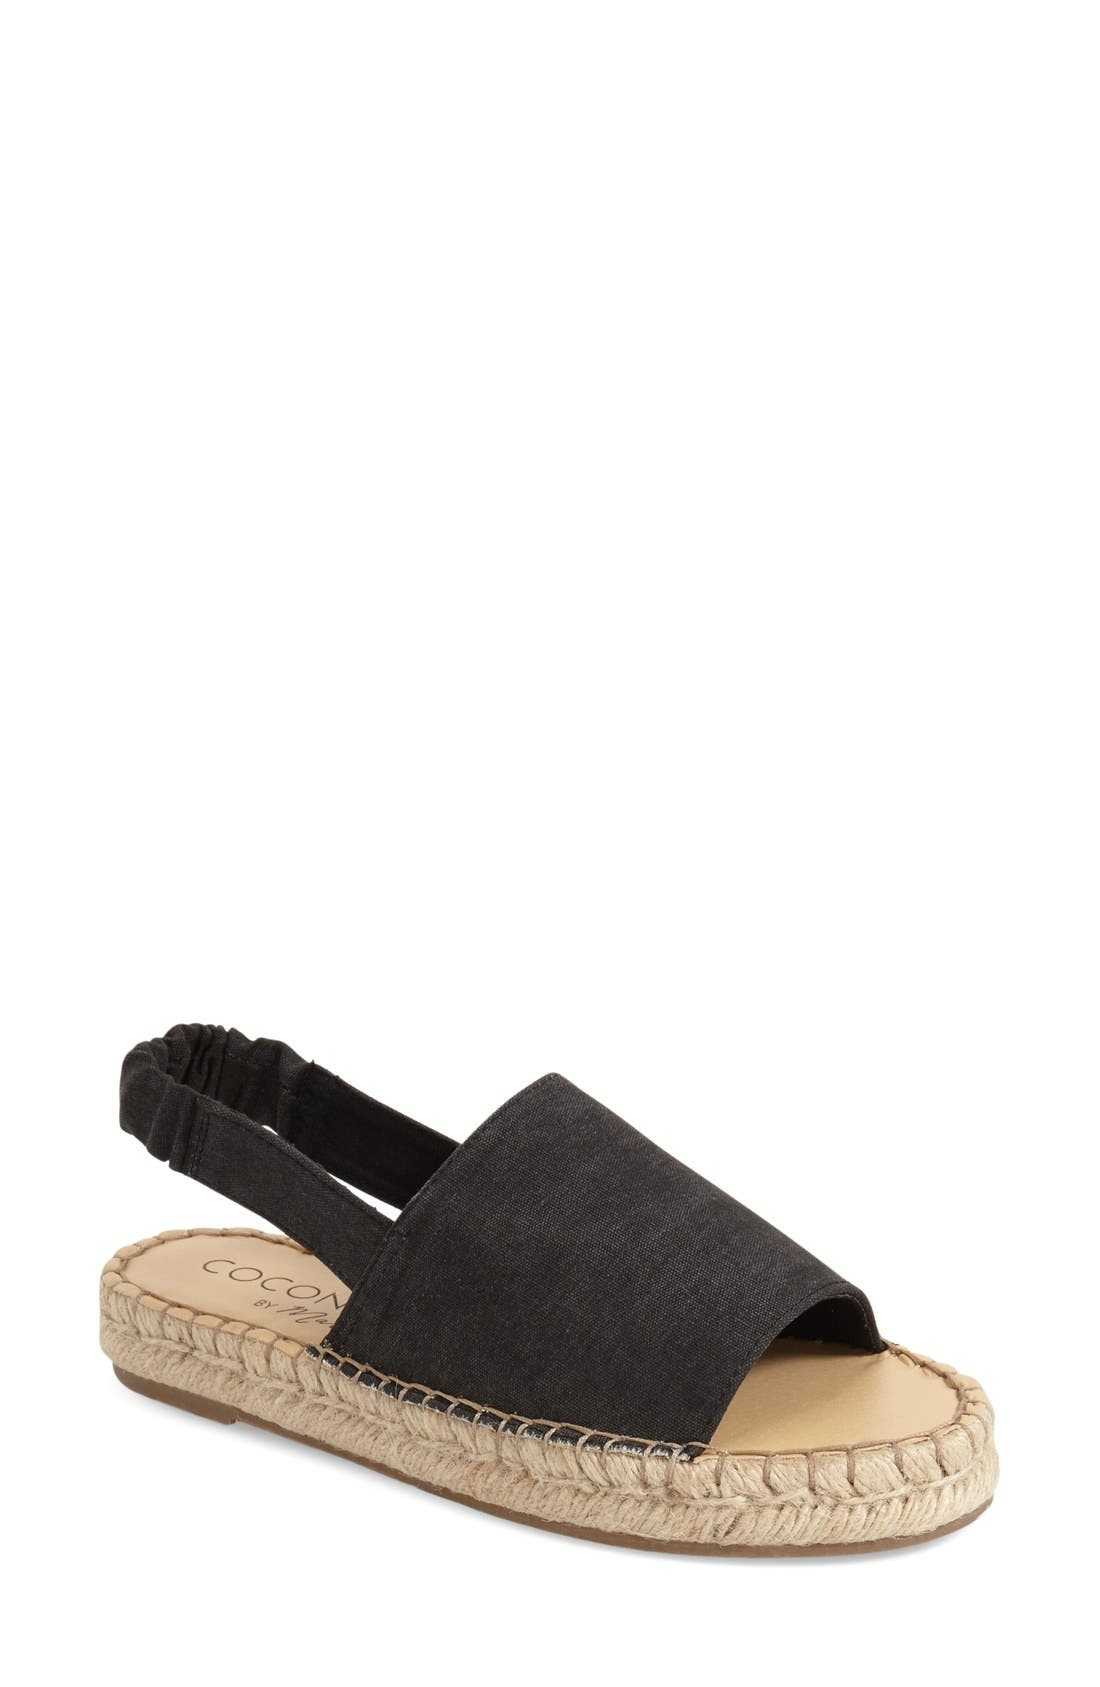 Main Image - Coconuts by Matisse 'Darling' Espadrille Sandal (Women)